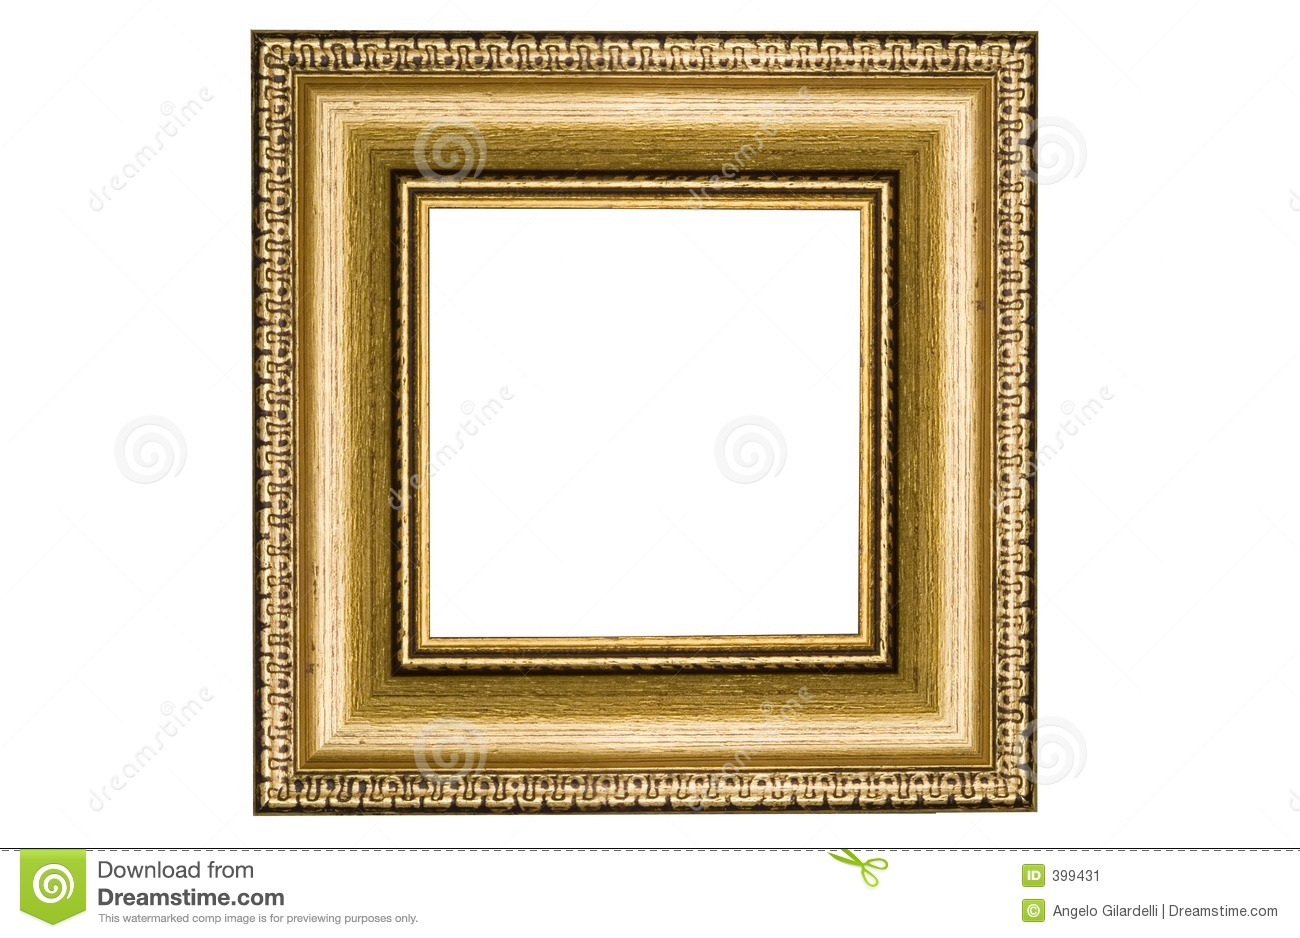 Old brick wall as a frame 01 stock photo image 18377500 - Classic Square Golden Frame Stock Image Image 399431